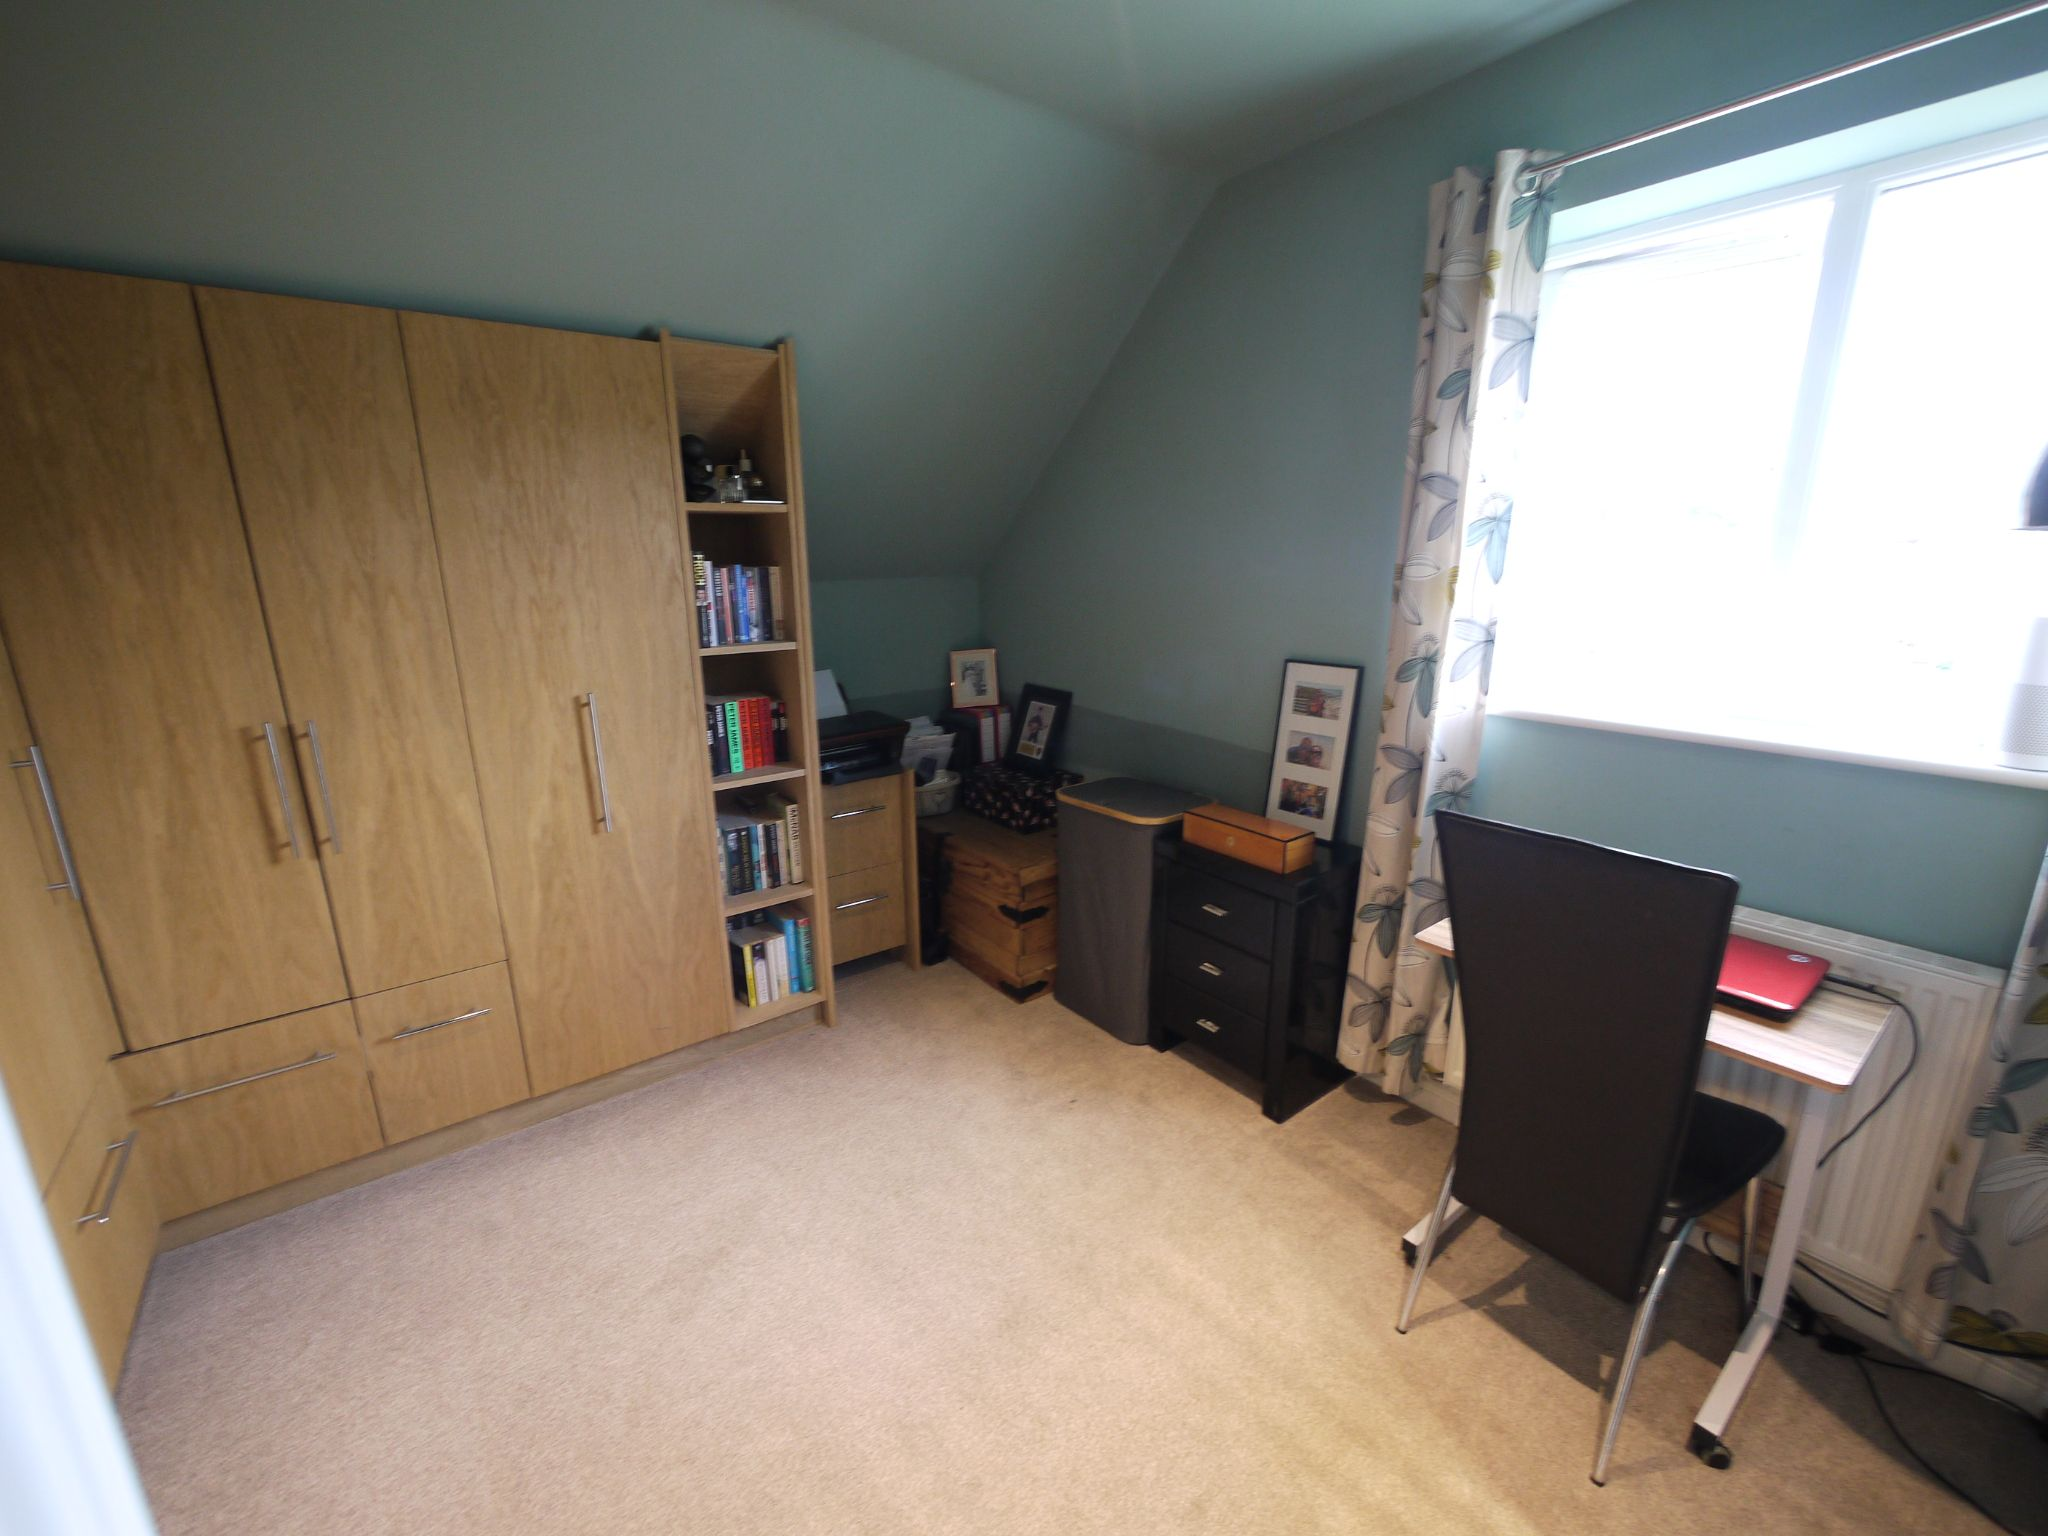 4 bedroom detached house SSTC in Halifax - Bed 3.